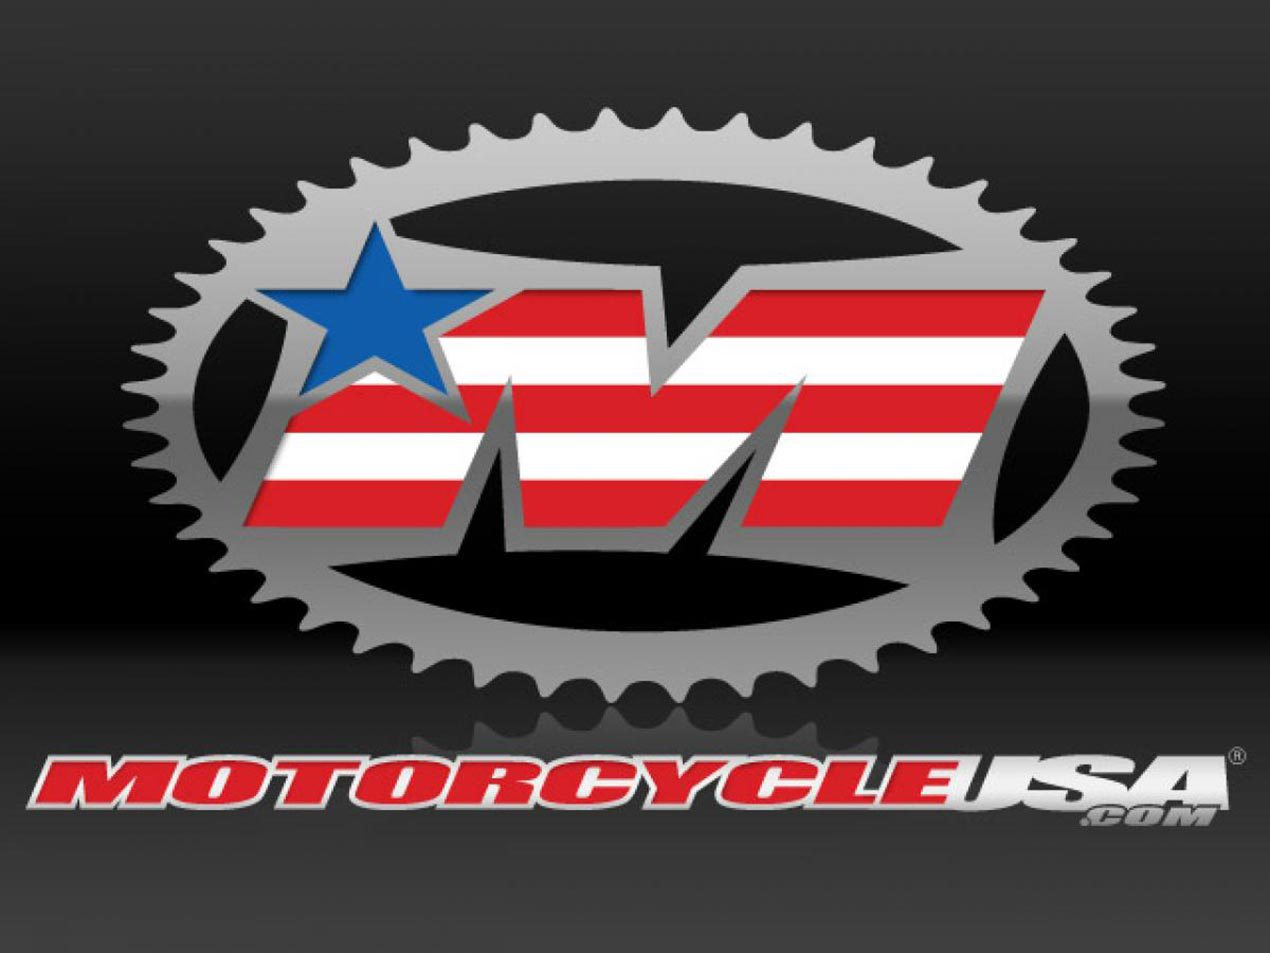 motorcycle usa logo